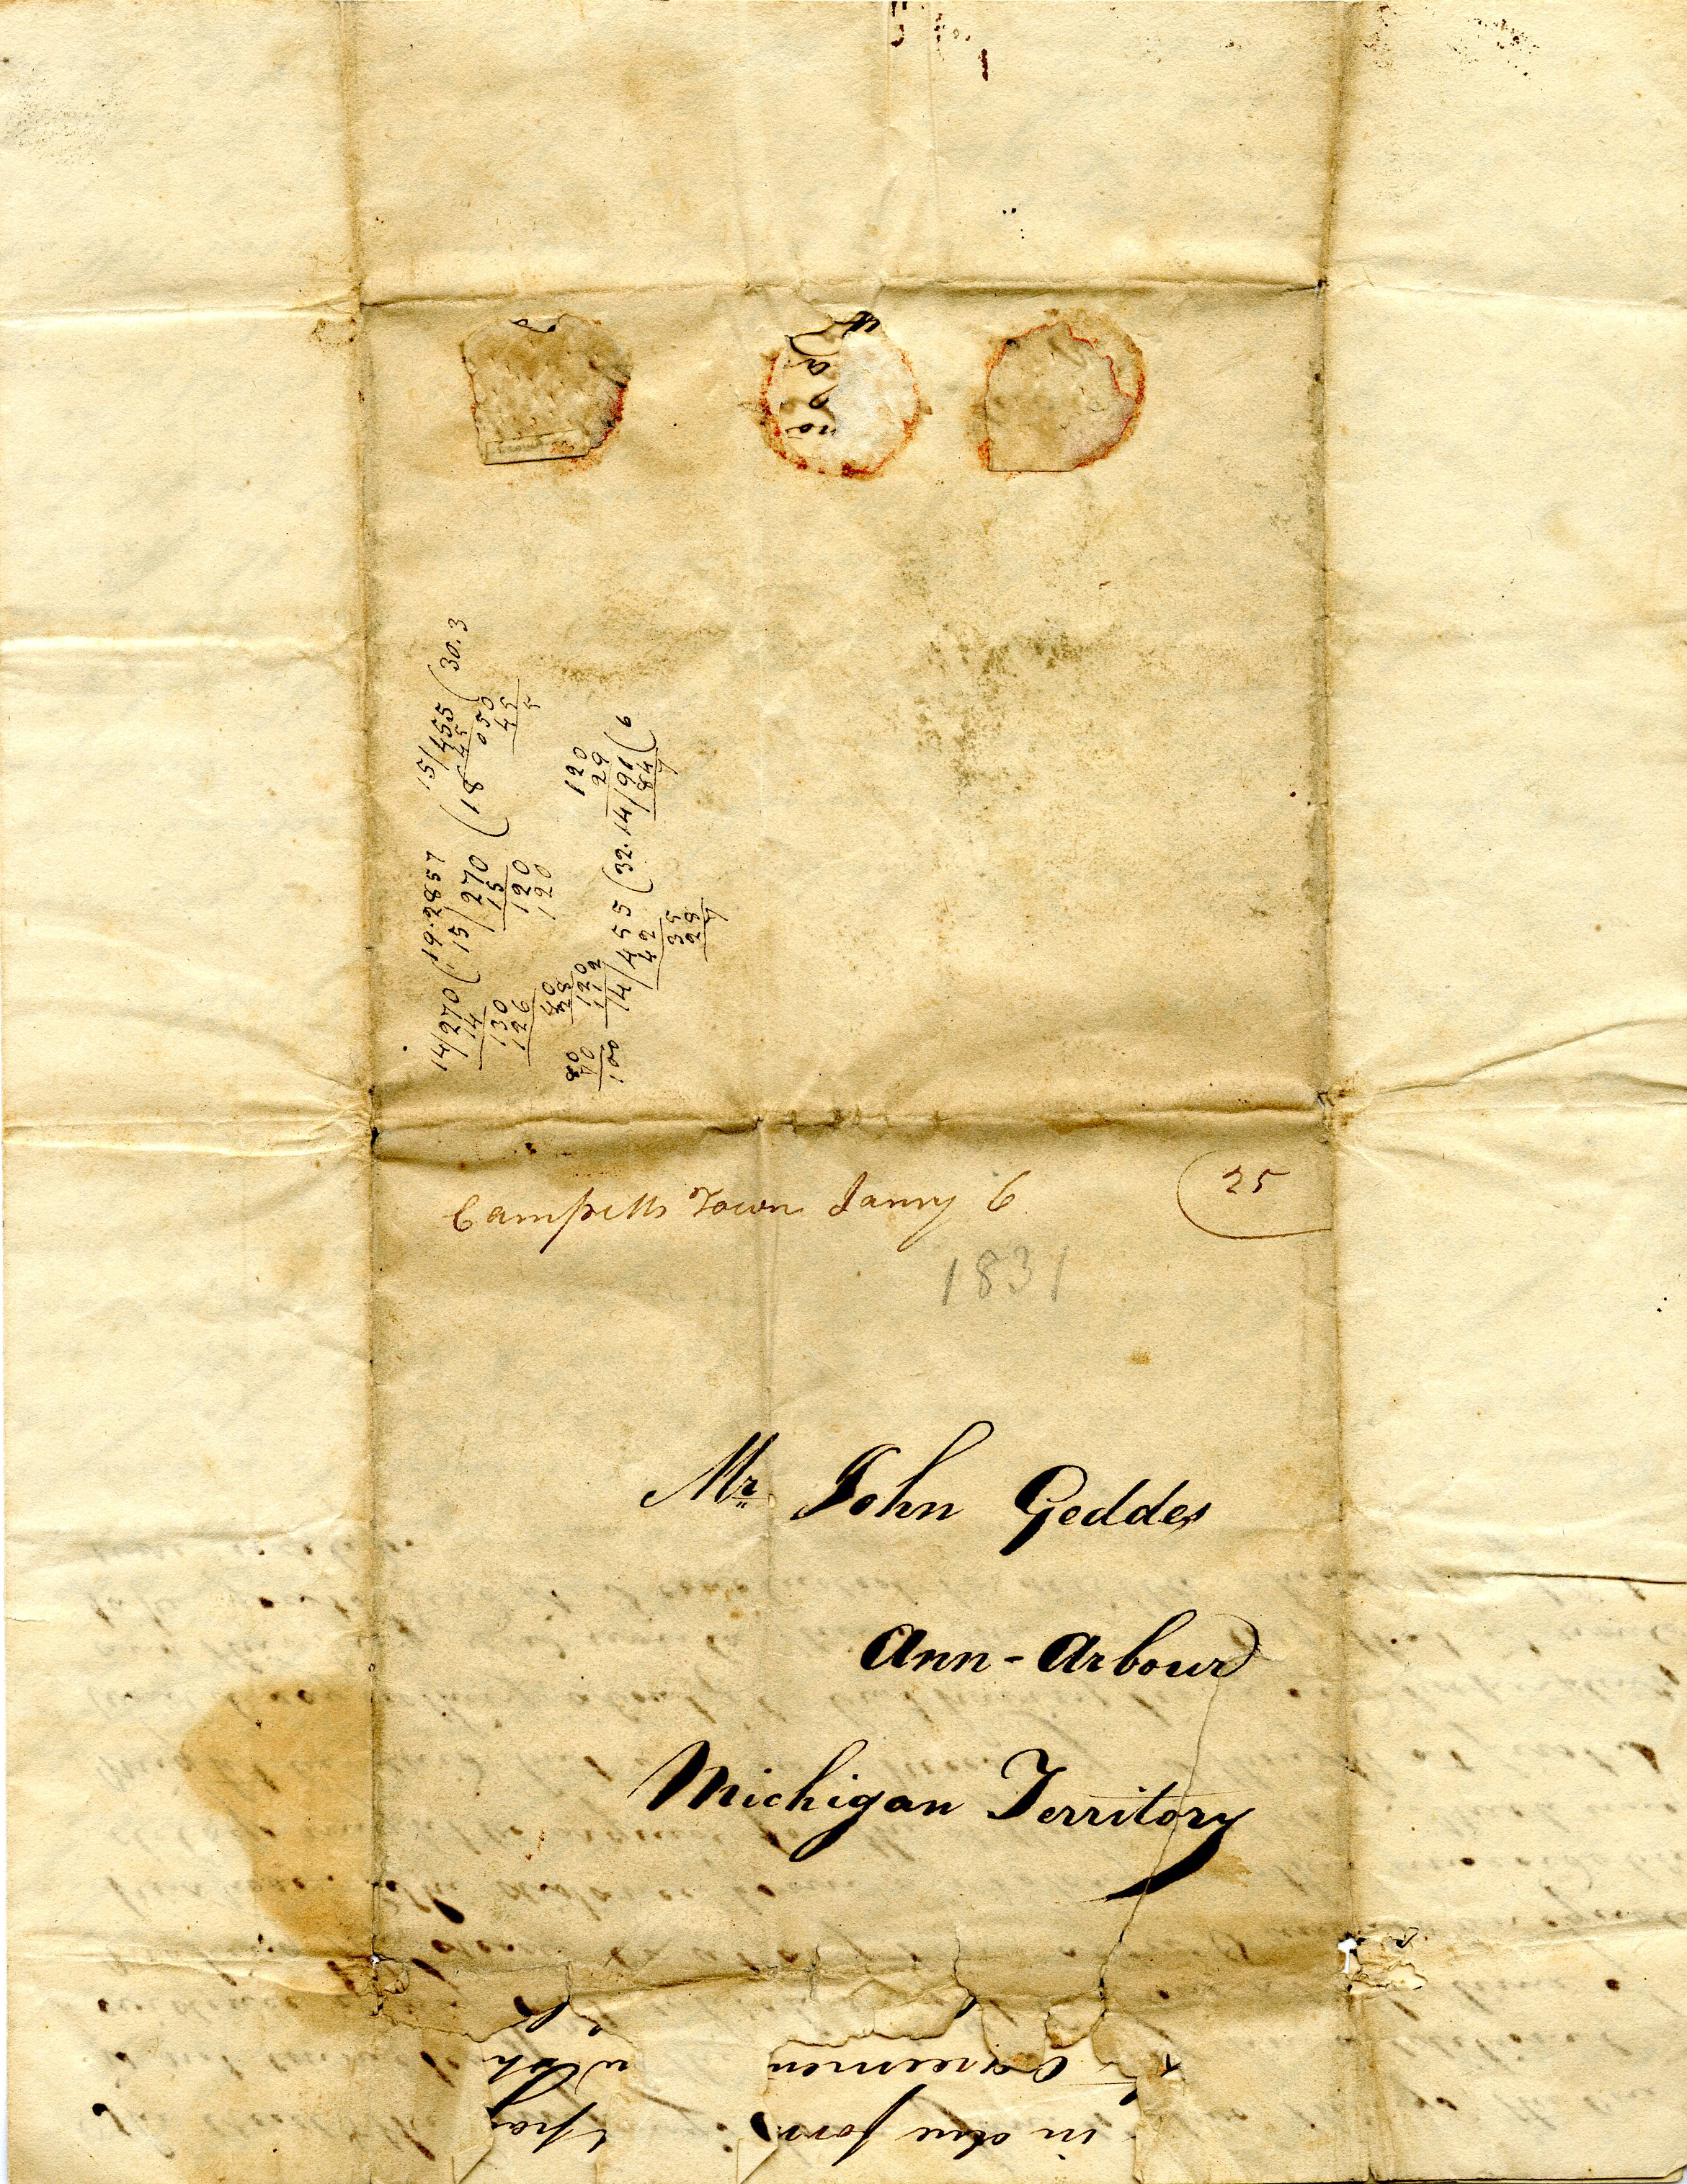 Letter From William Geddes to John Geddes, January 4, 1831 image